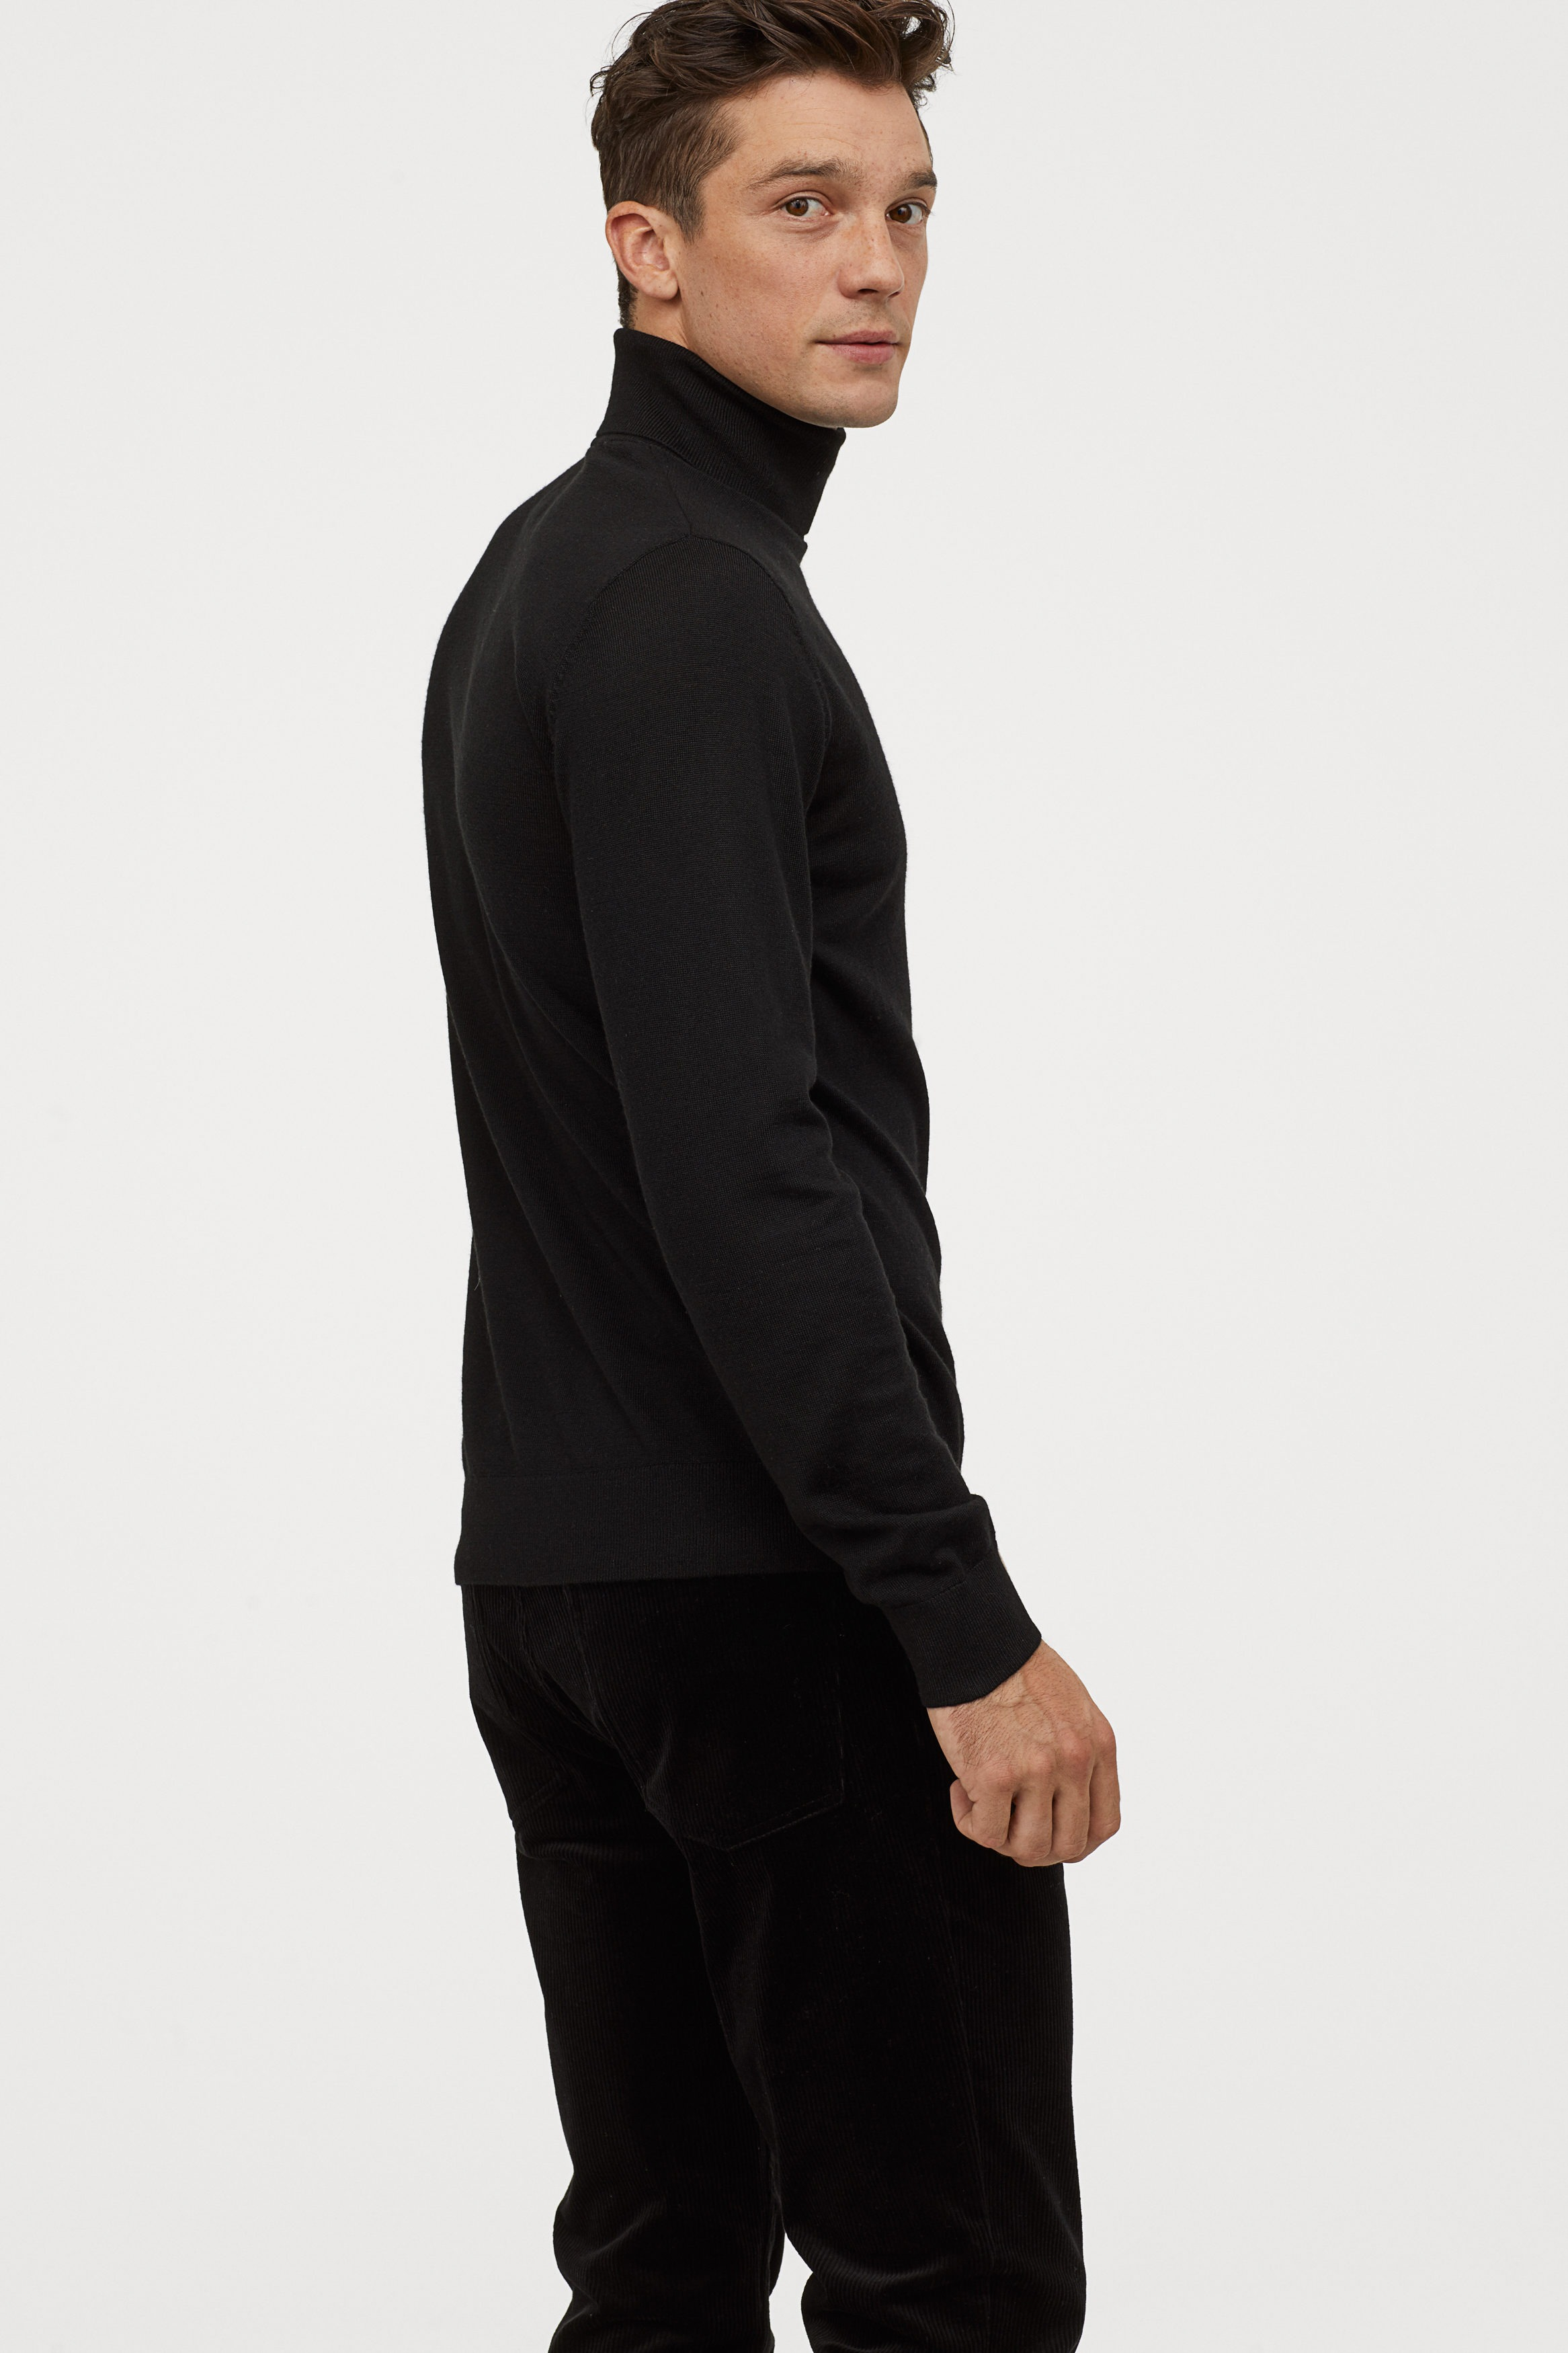 Pulover H&M Casual (3983) photo 0